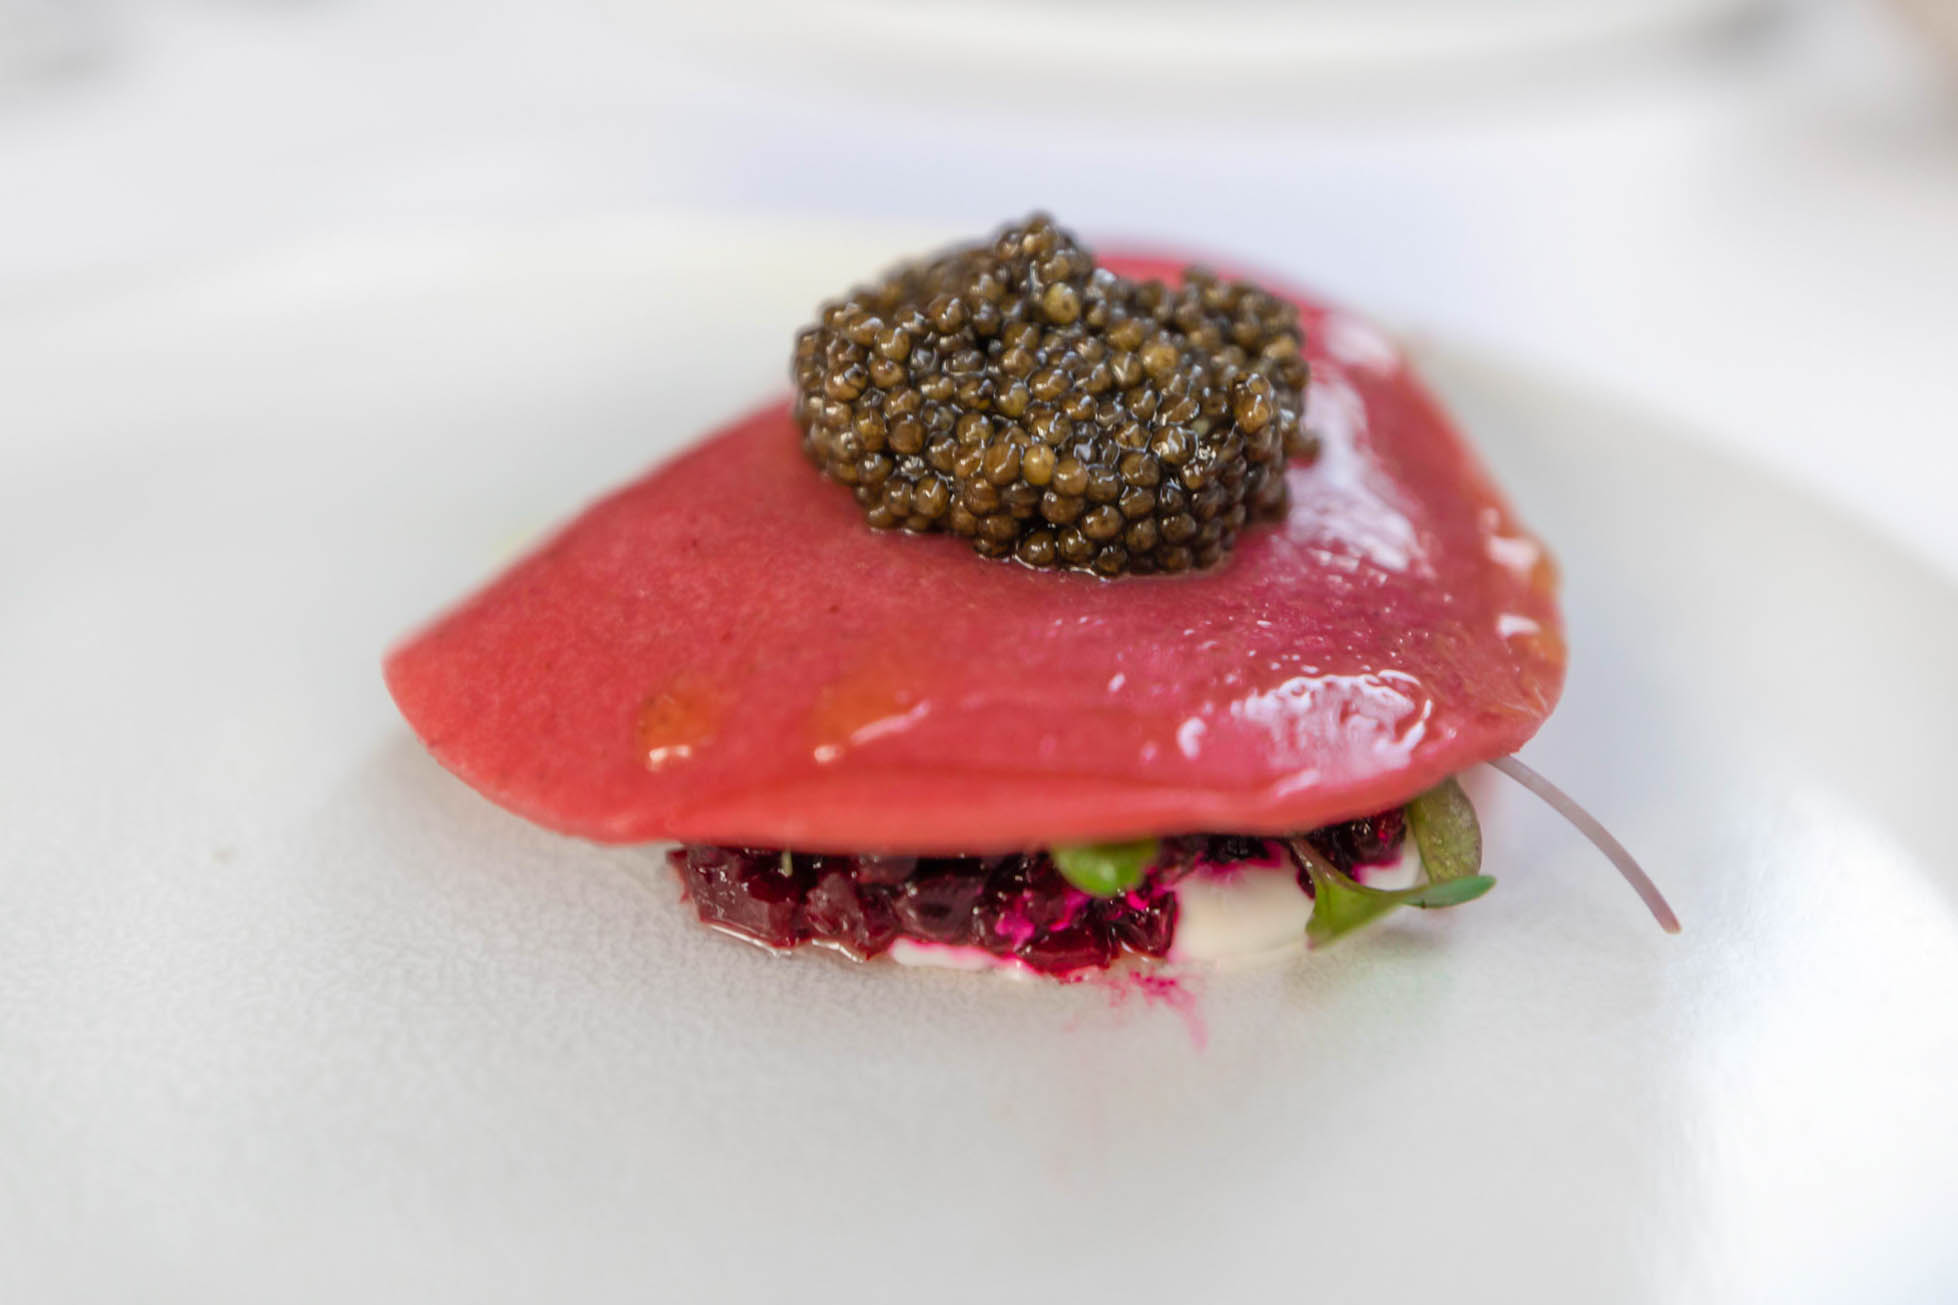 Edisto Island Beets with Strawberry, Anchovy, Feta and Regiis Ova Supreme Caviar Photographed by Luxury Travel Writer Annie Fairfax